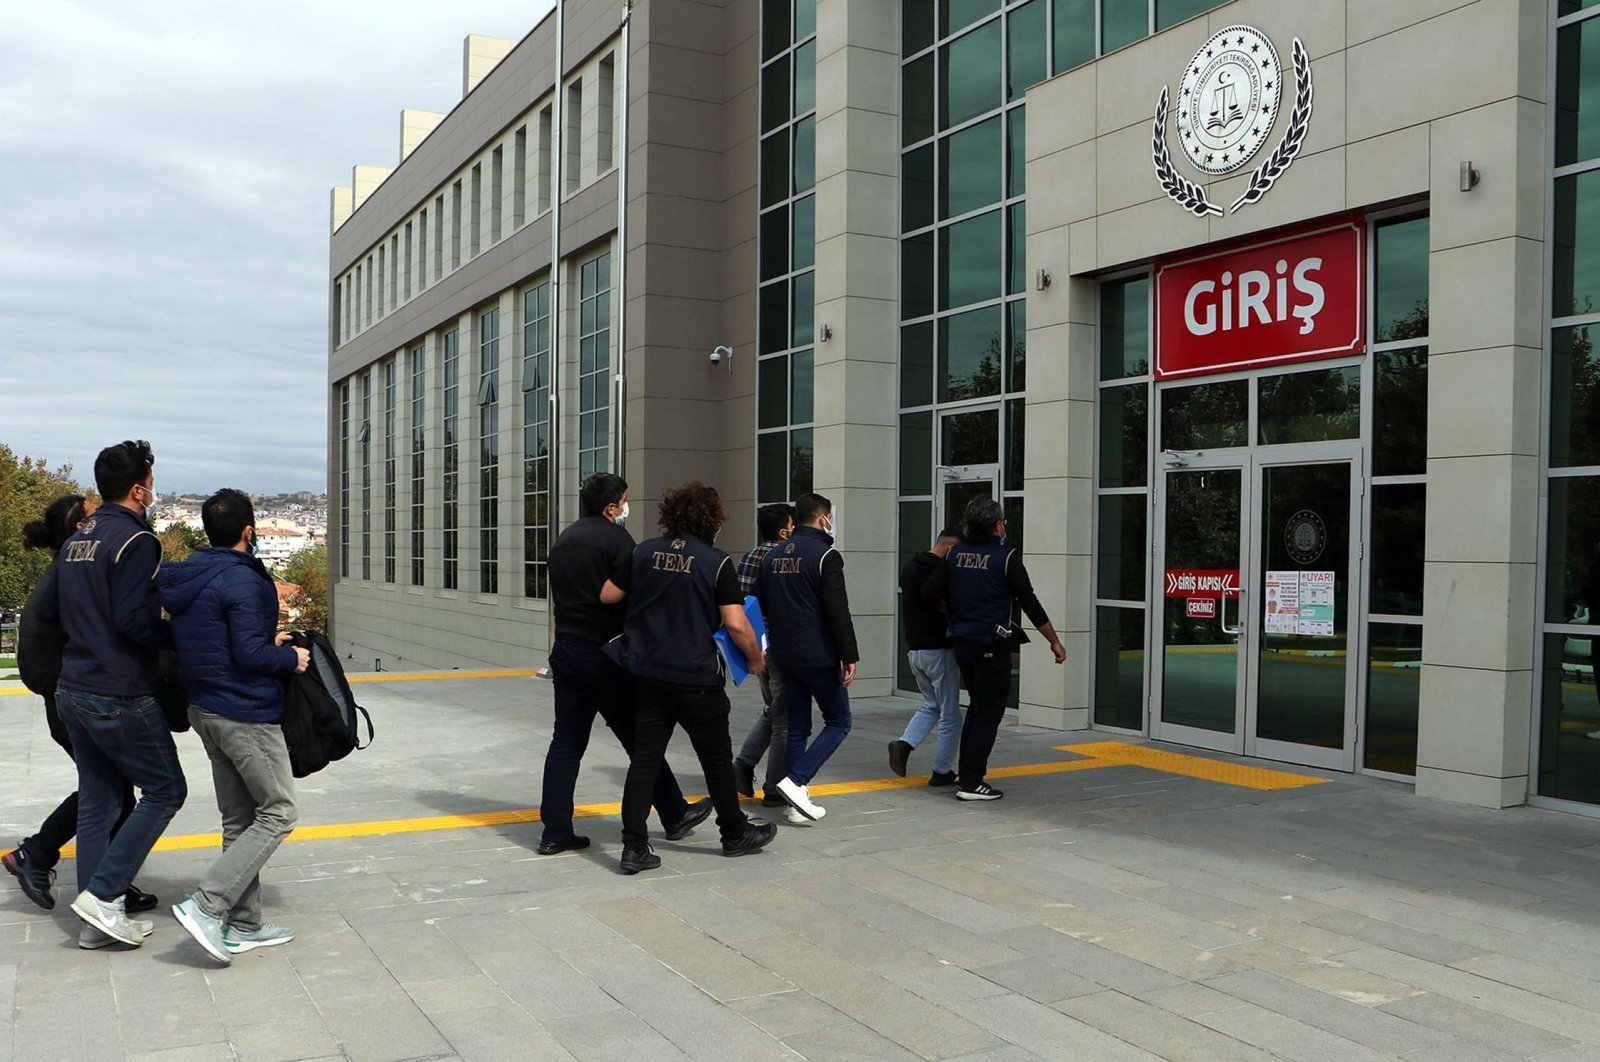 Police escort FETÖ suspects to court in Tekirdağ, northwestern Turkey, Oct. 1, 2021. The terrorist group's members are increasingly trying to flee abroad or have gone into hiding after FETÖ's 2016 coup attempt was quelled. (DHA Photo)